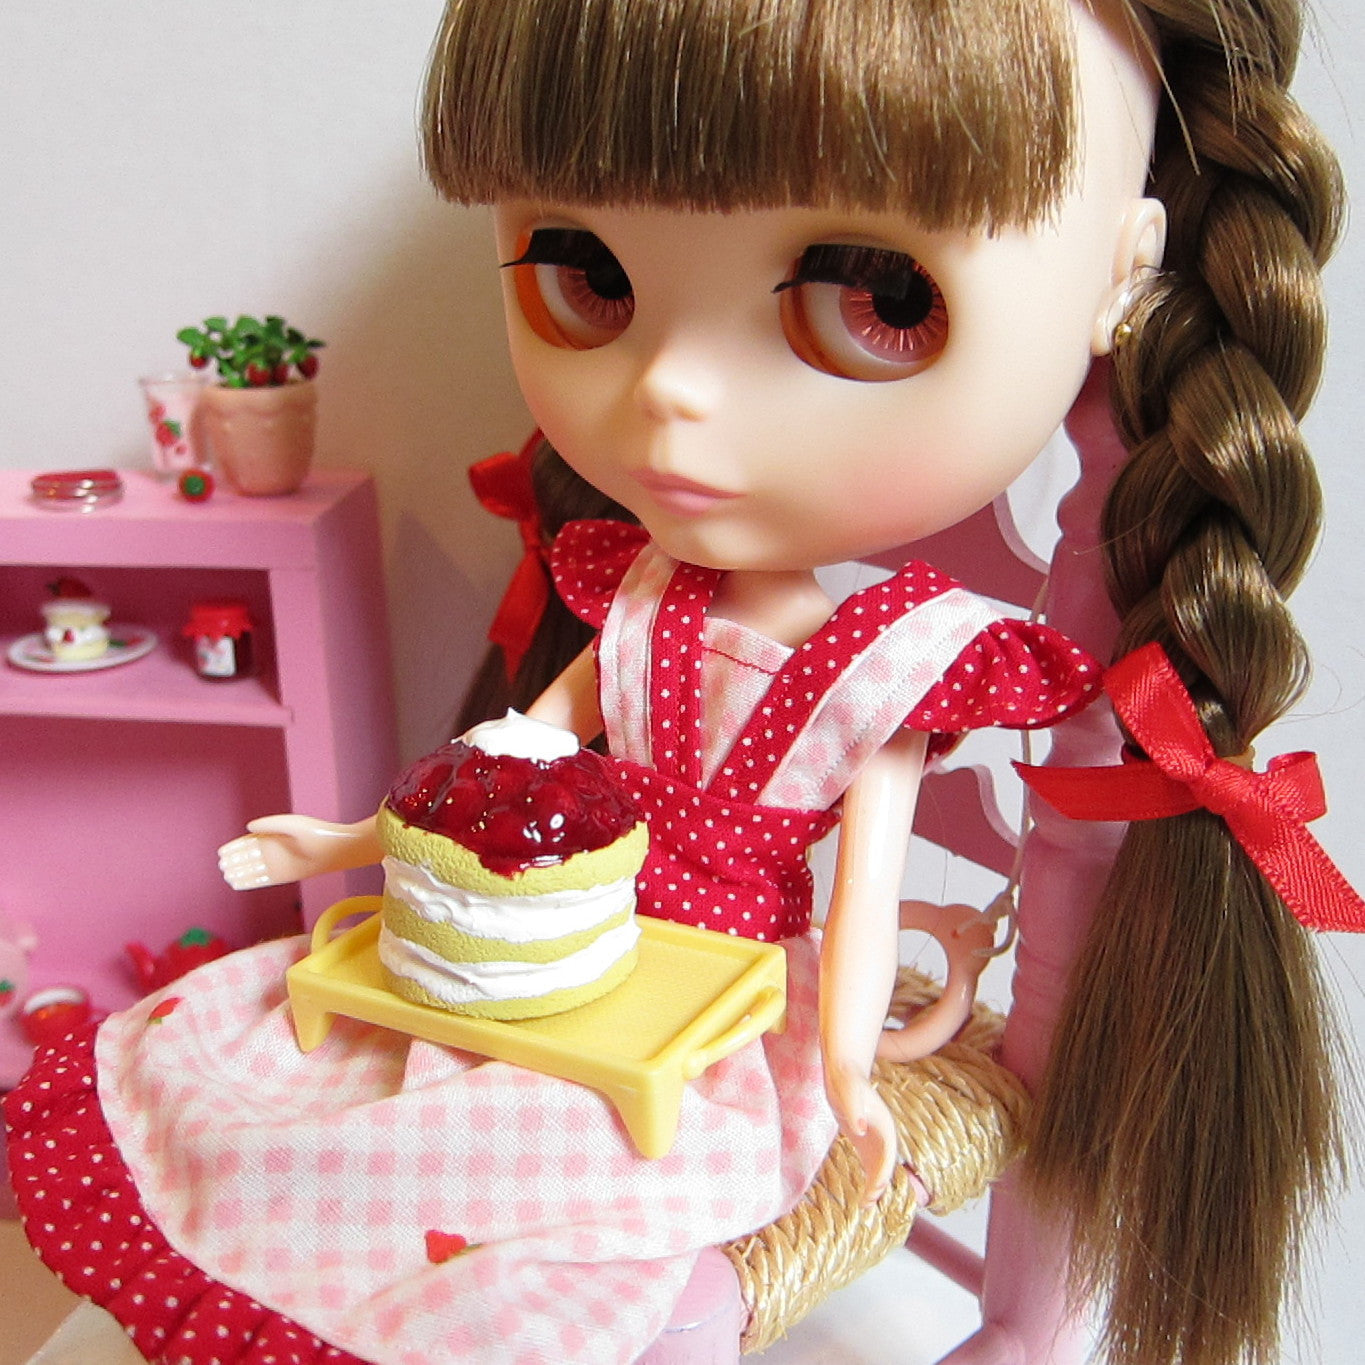 Miniature polymer clay strawberry shortcake cake for Blythe & Pullip